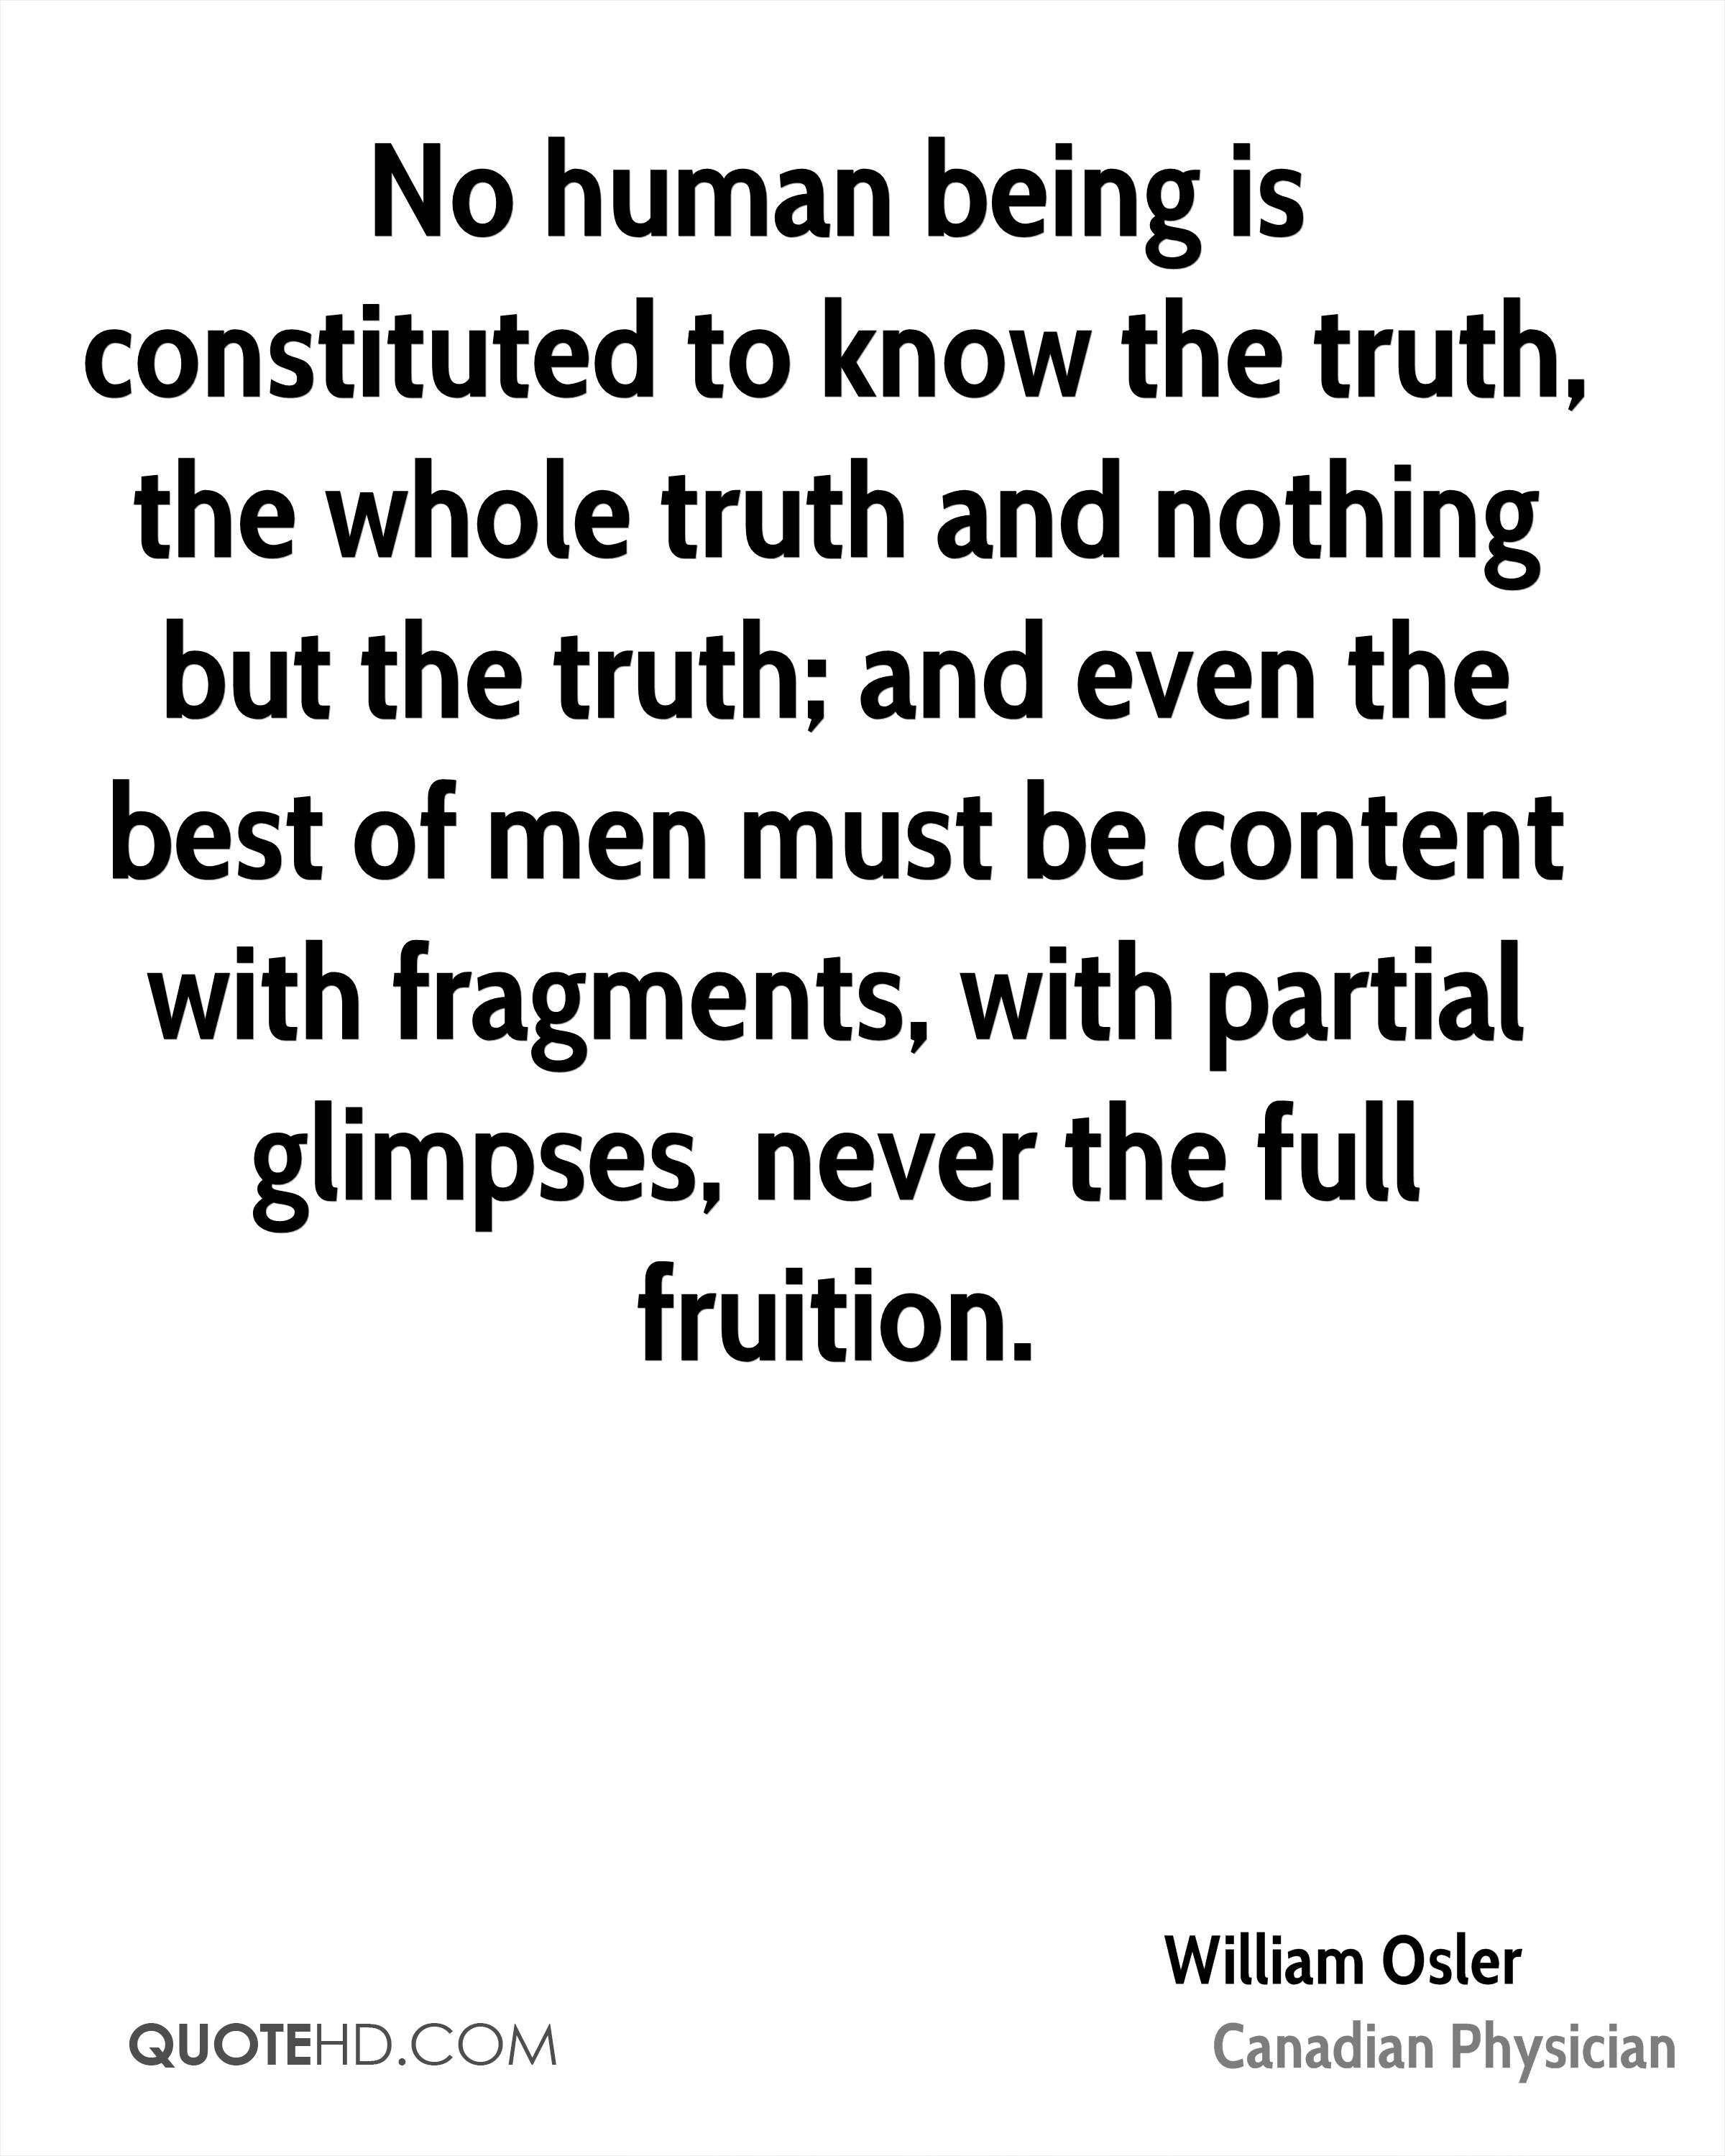 No human being is constituted to know the truth, the whole truth and nothing but the truth; and even the best of men must be content with fragments, with partial glimpses, never the full fruition.